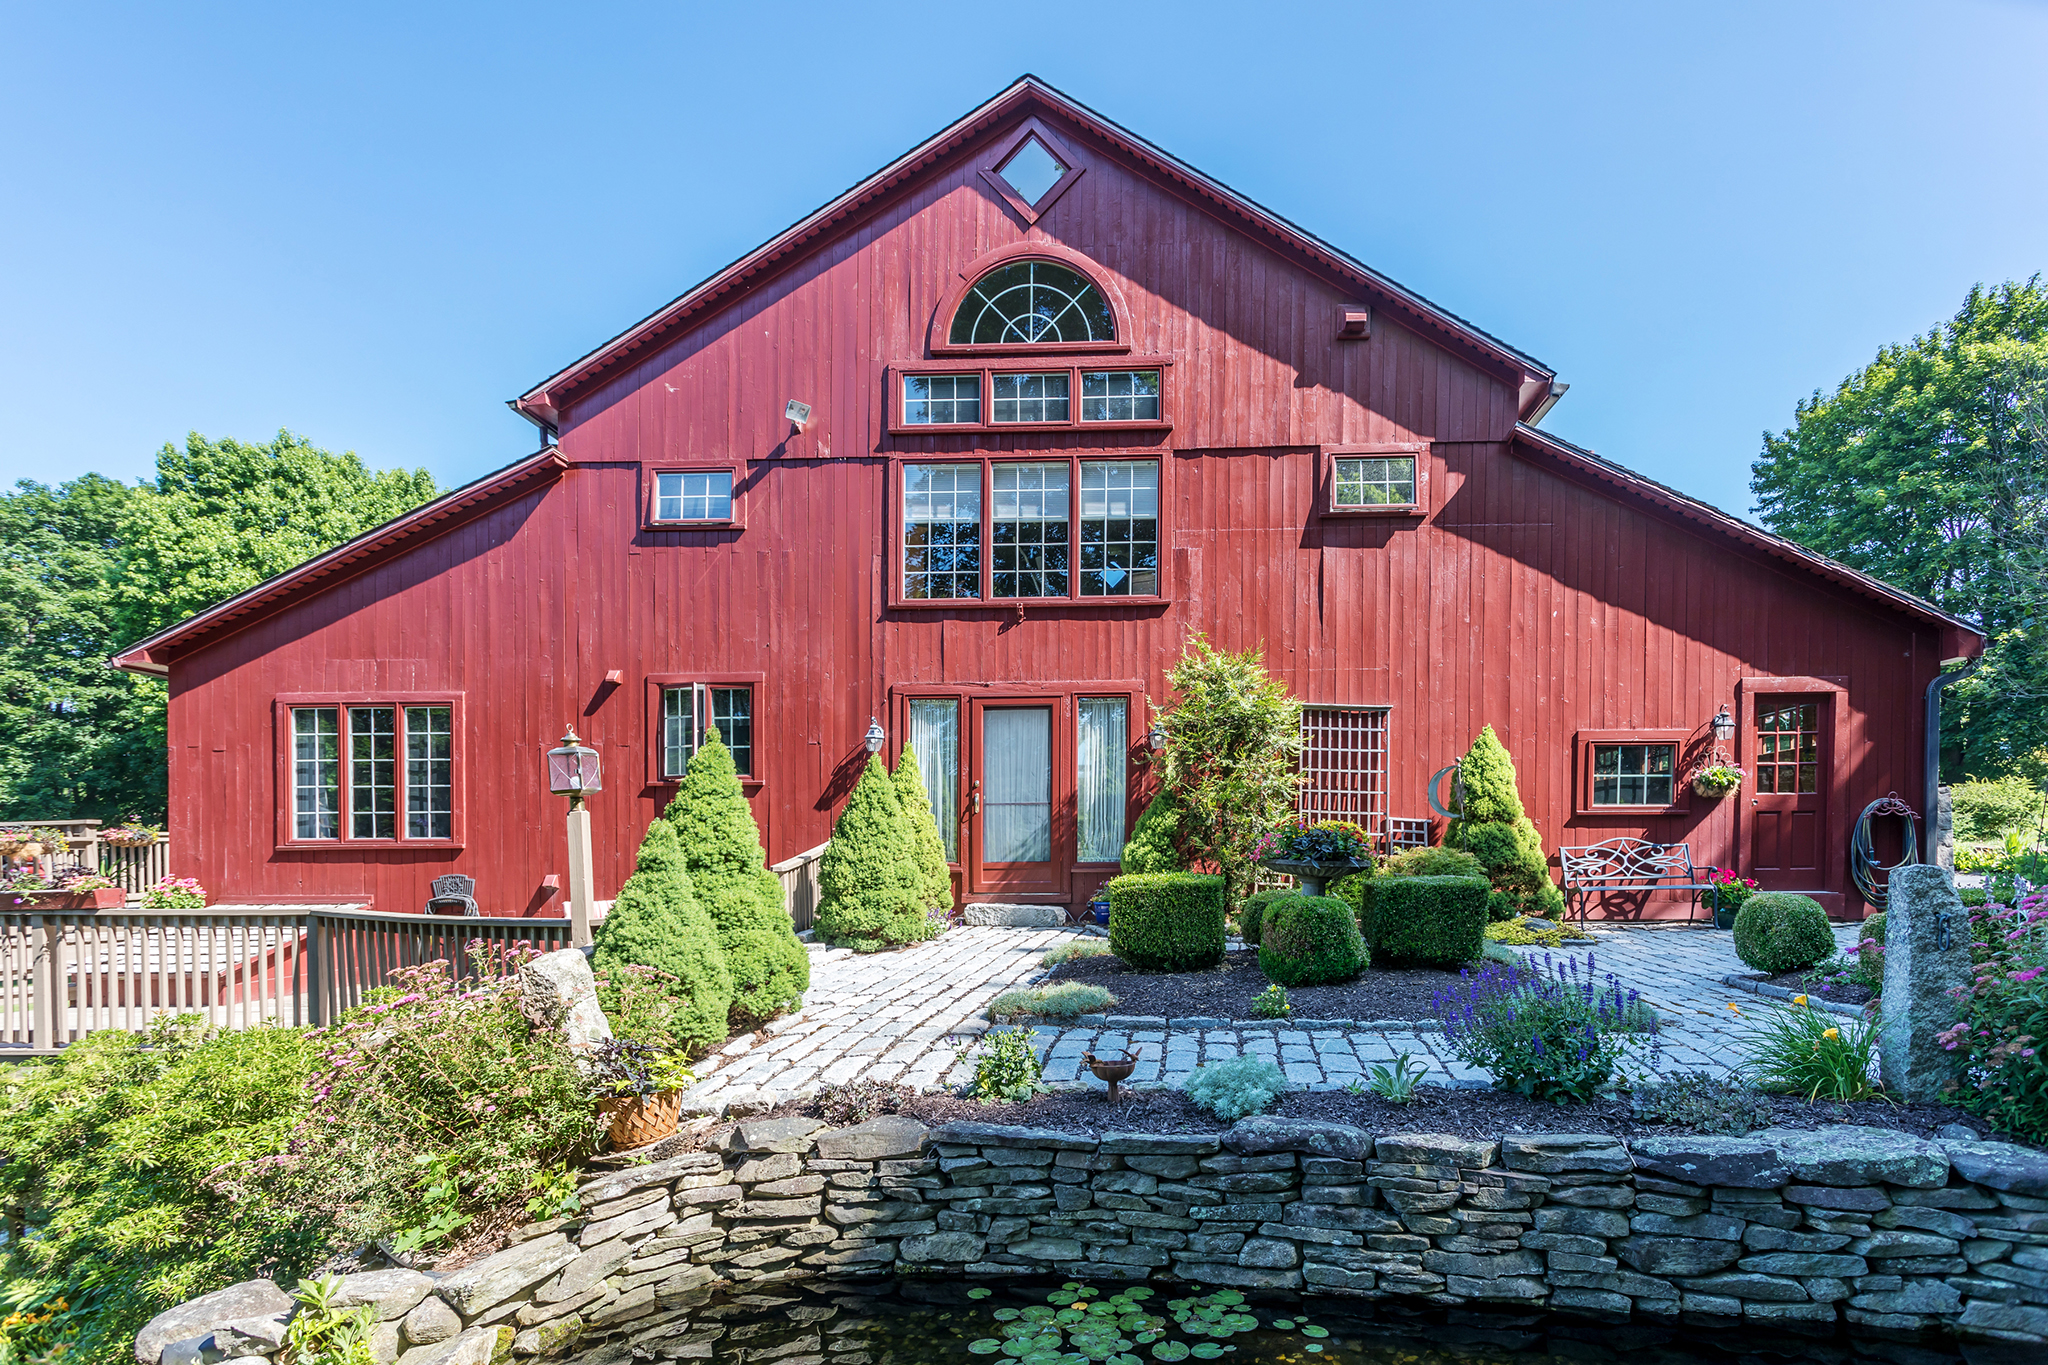 An exterior view of a large red barn converted into a house with bushes and landscaping all around.